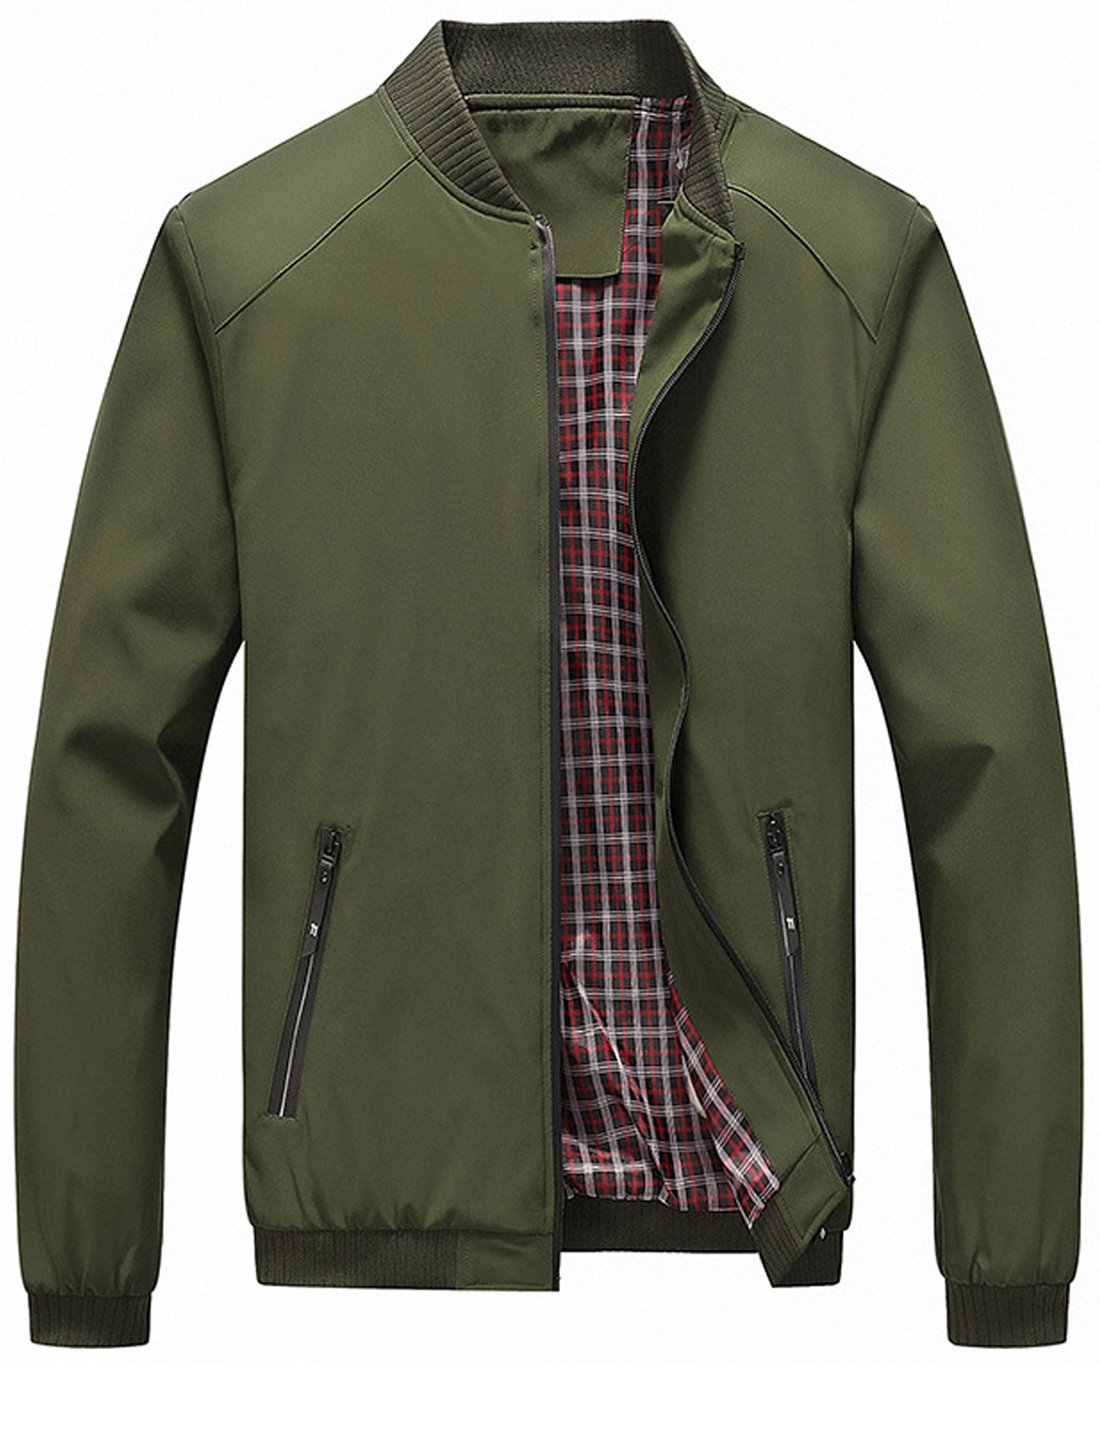 Tanming Men's Color Block Slim Casual Thin Lightweight Bomber Jacket (Large, Army Green-169) by Tanming